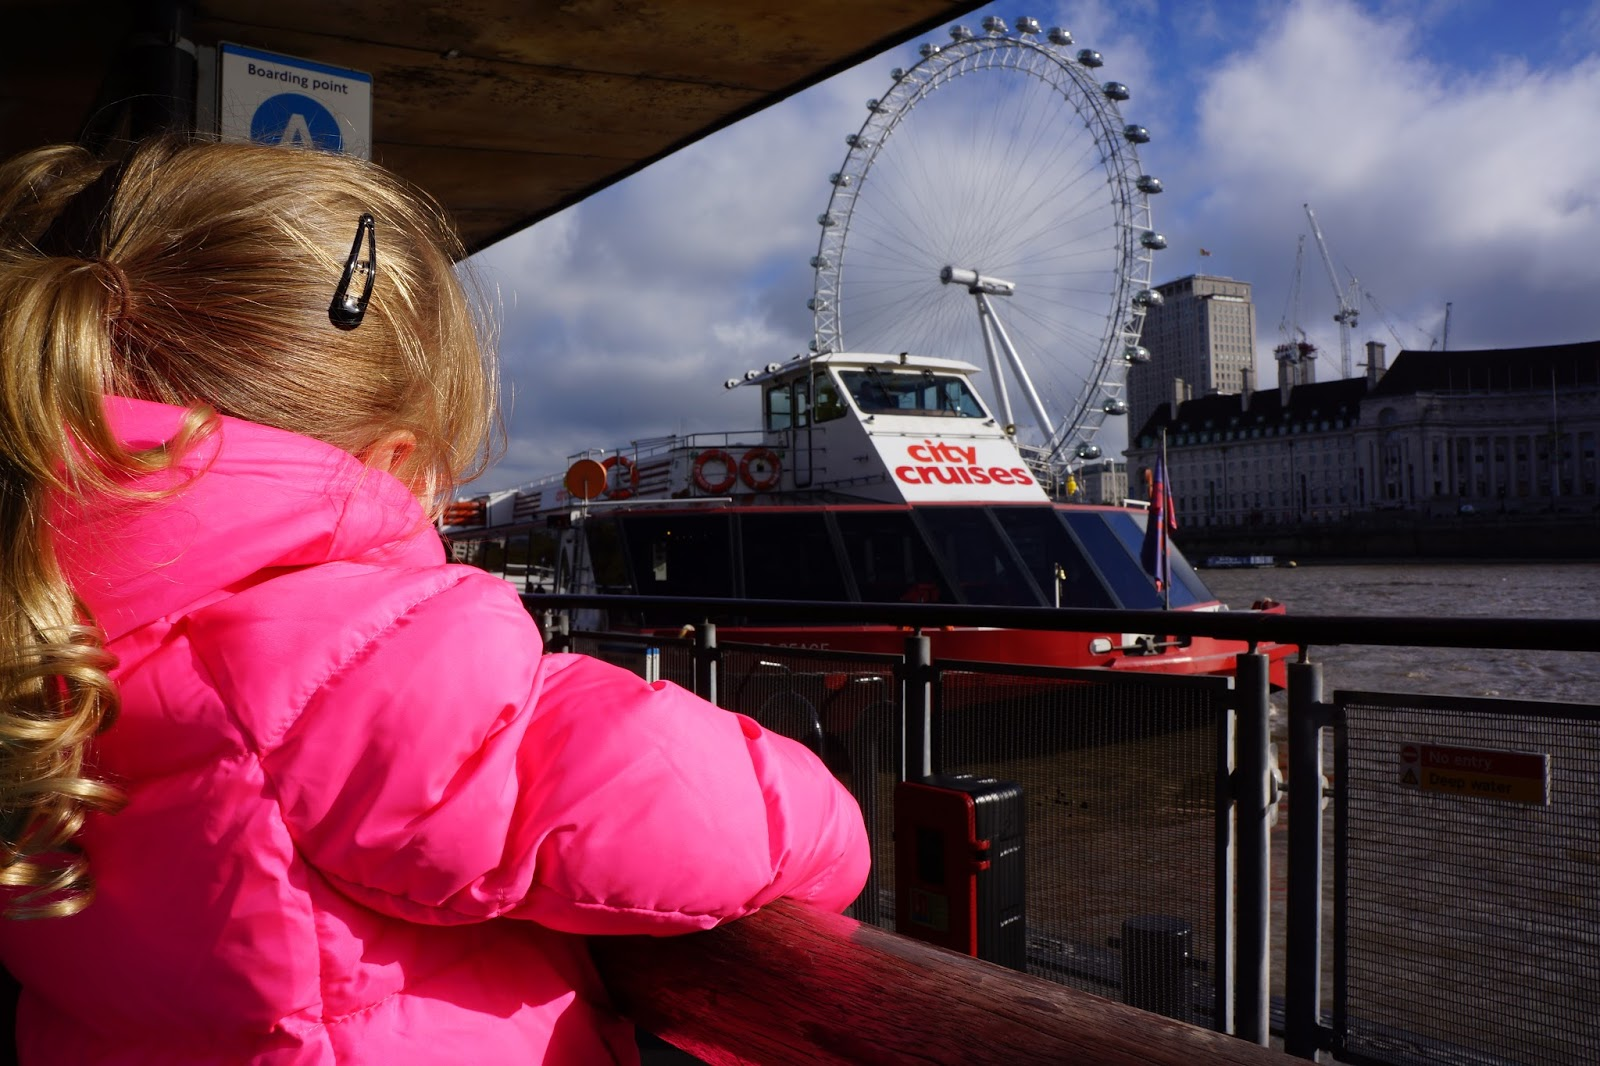 girl waiting for thames cruise line